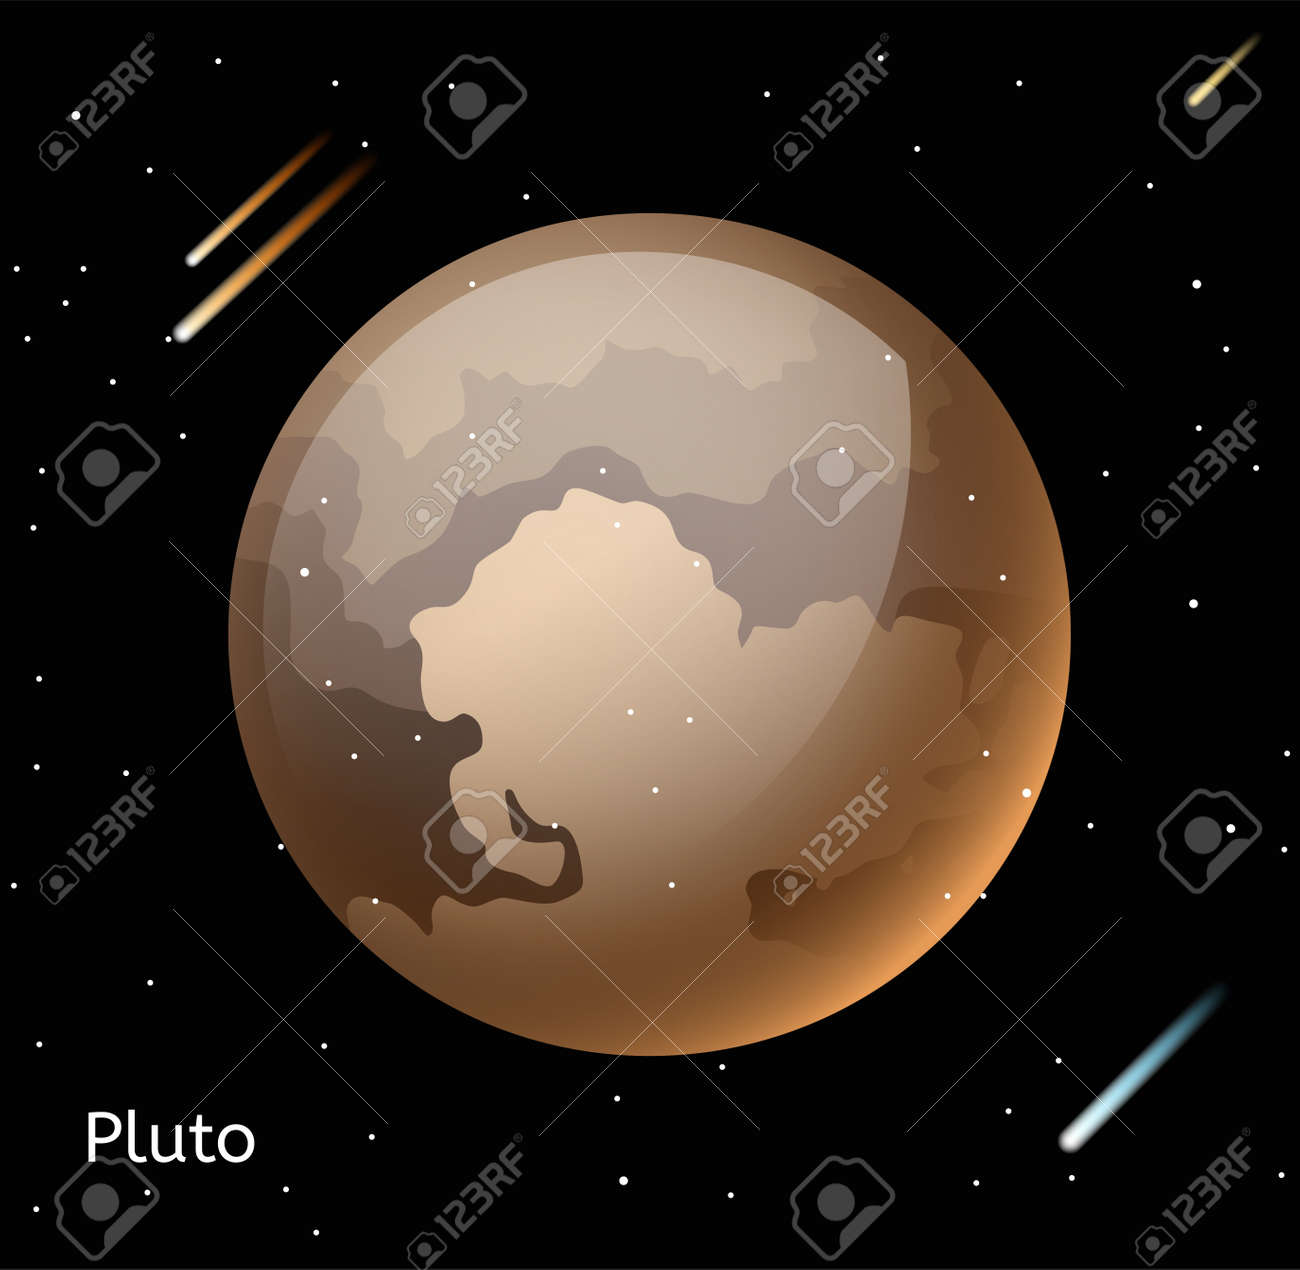 Pluto planet 3d vector illustration globe pluto texture map pluto planet 3d vector illustration globe pluto texture map globe vector pluto view from gumiabroncs Image collections